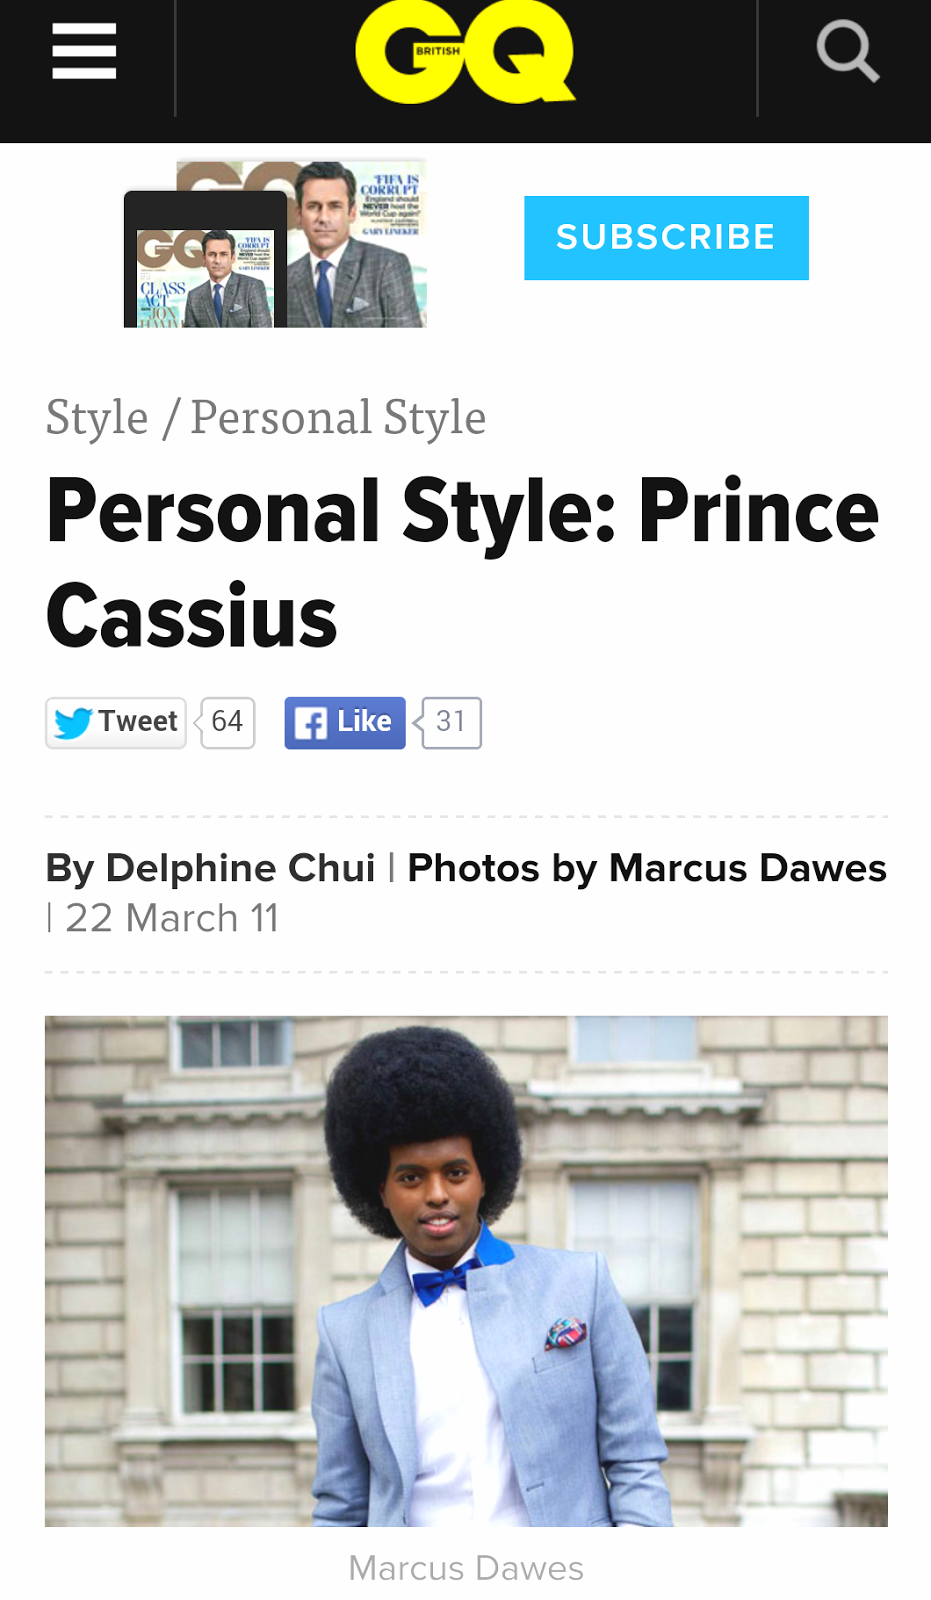 http://www.gq-magazine.co.uk/style/articles/2011-03/22/gq-style-news-prince-cassius-fashion-blogger-interview-how-to-dress-get-the-look